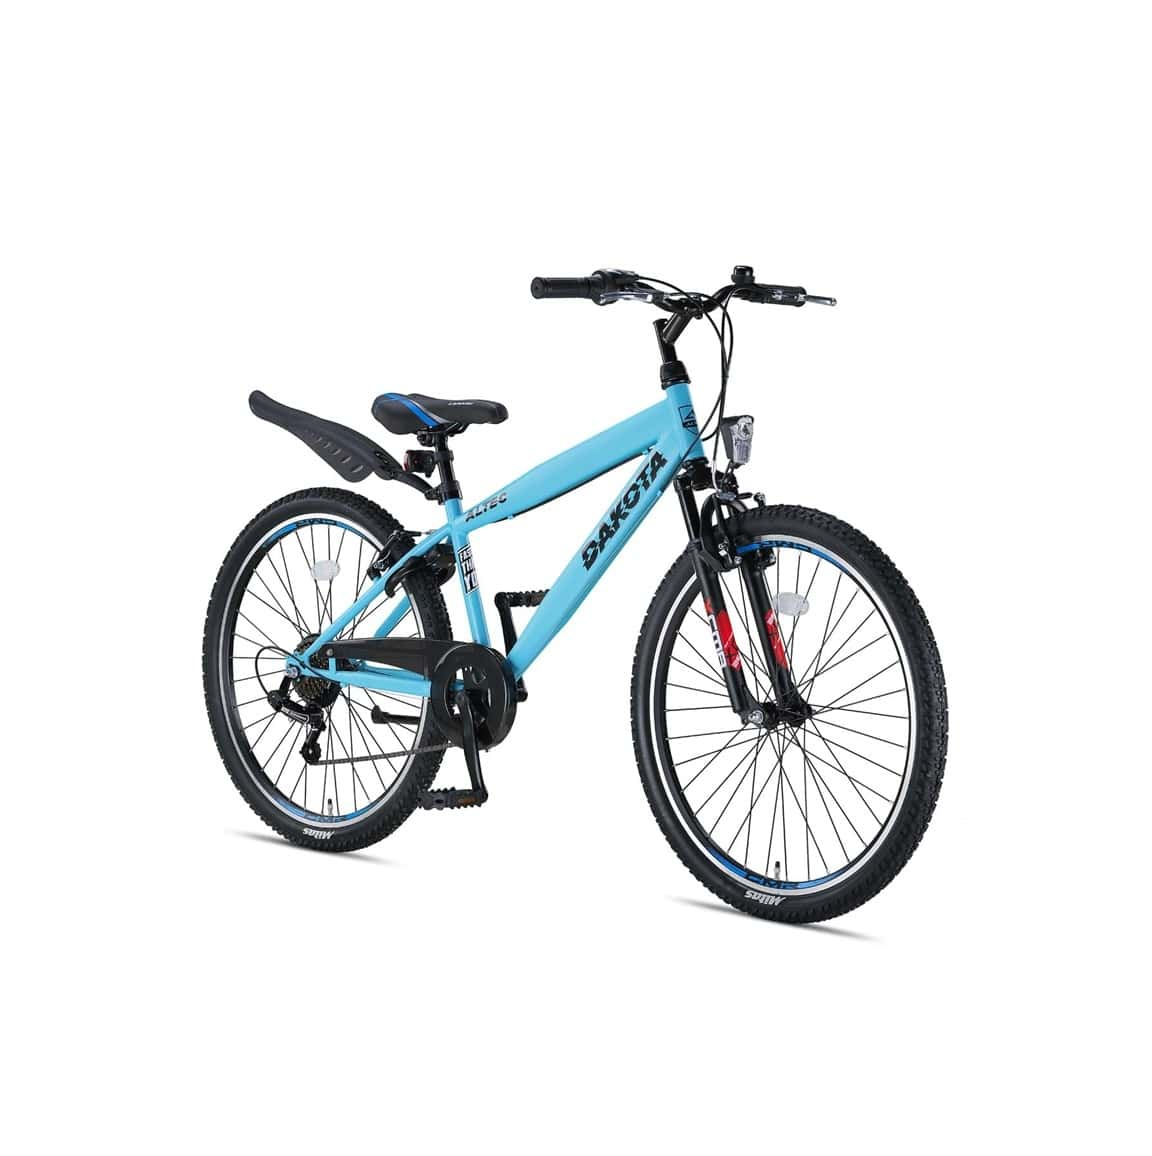 Altec-Dakota-26inch-Jongensfiets-7speed-2019-Neon-Blue-Nieuw-1-min